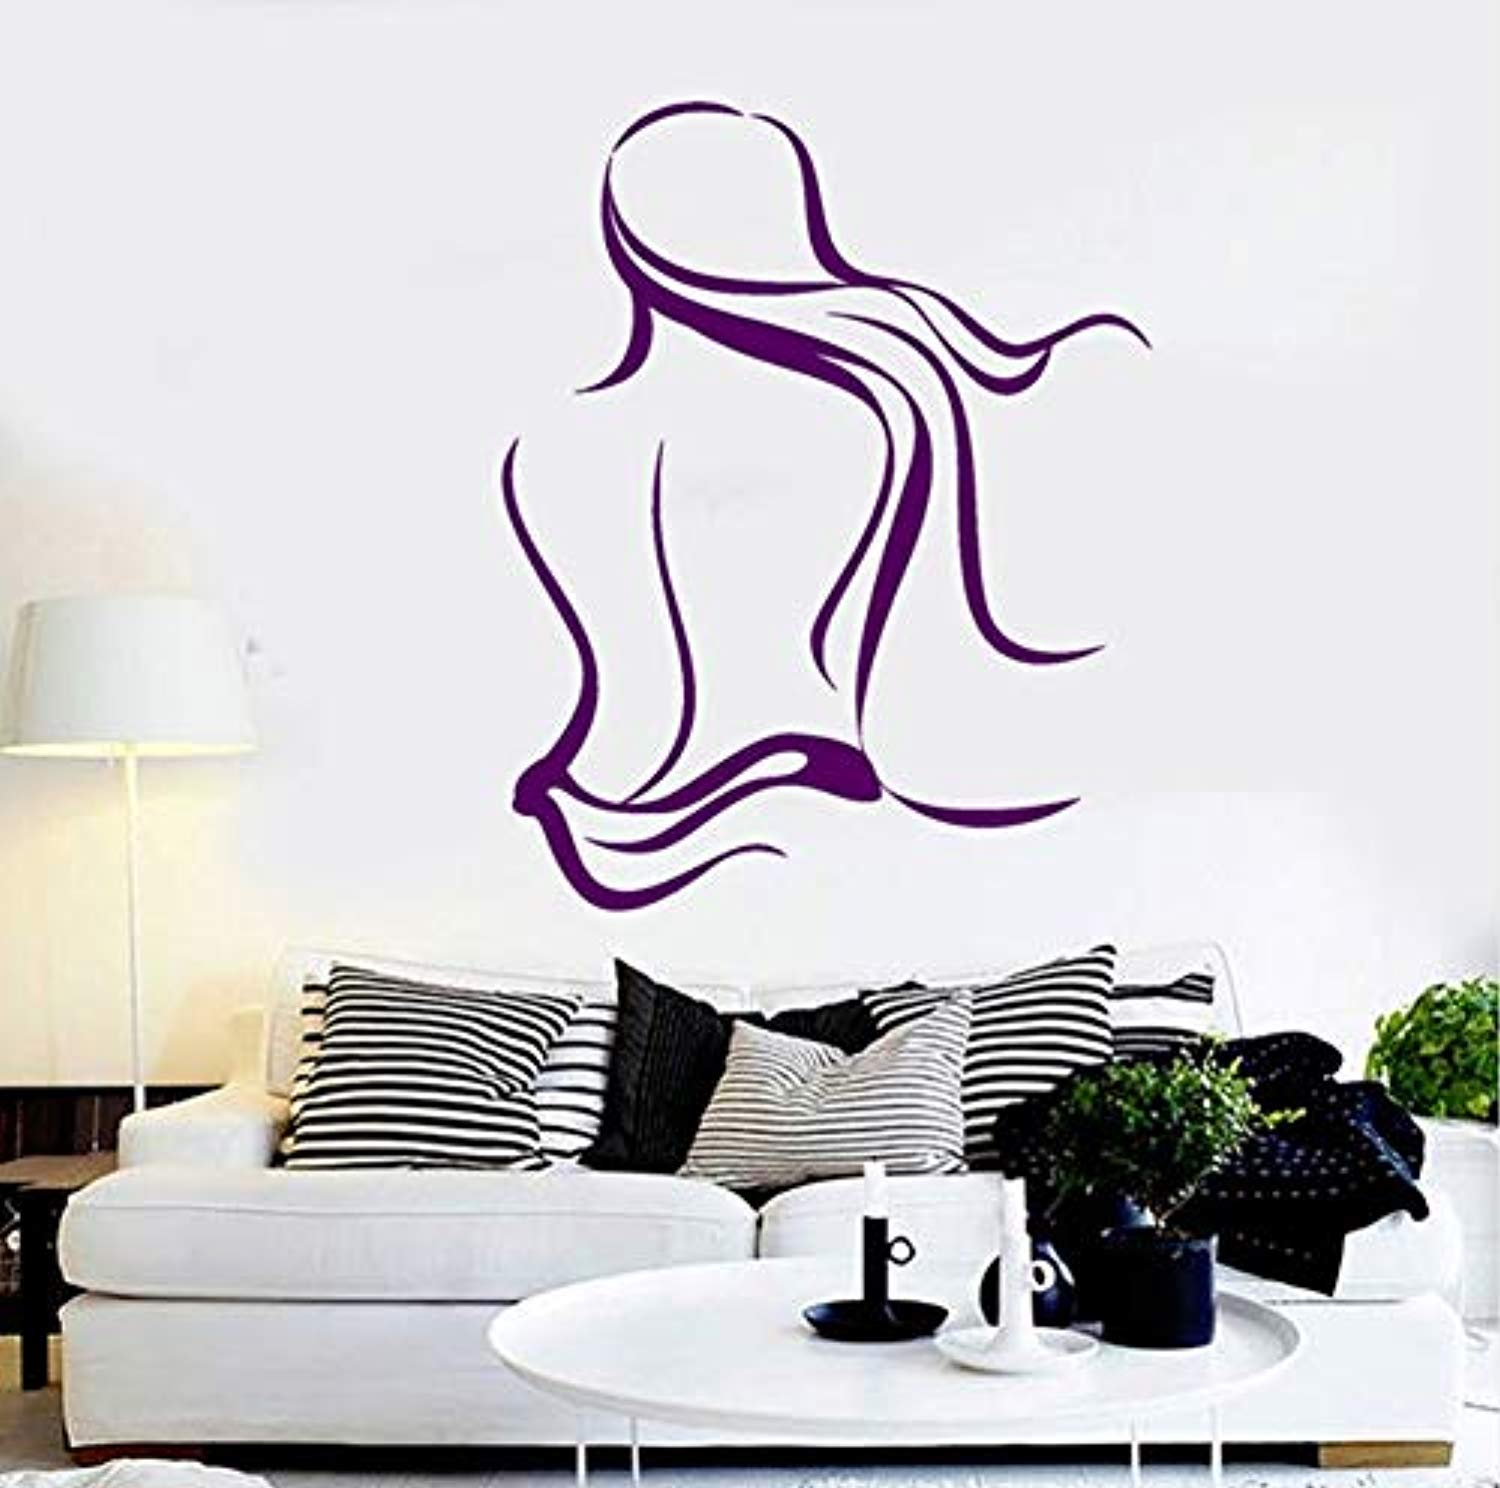 Amazoncom Profit Decal Spa Salon Naked Woman Massage Relax Art 1500x1488